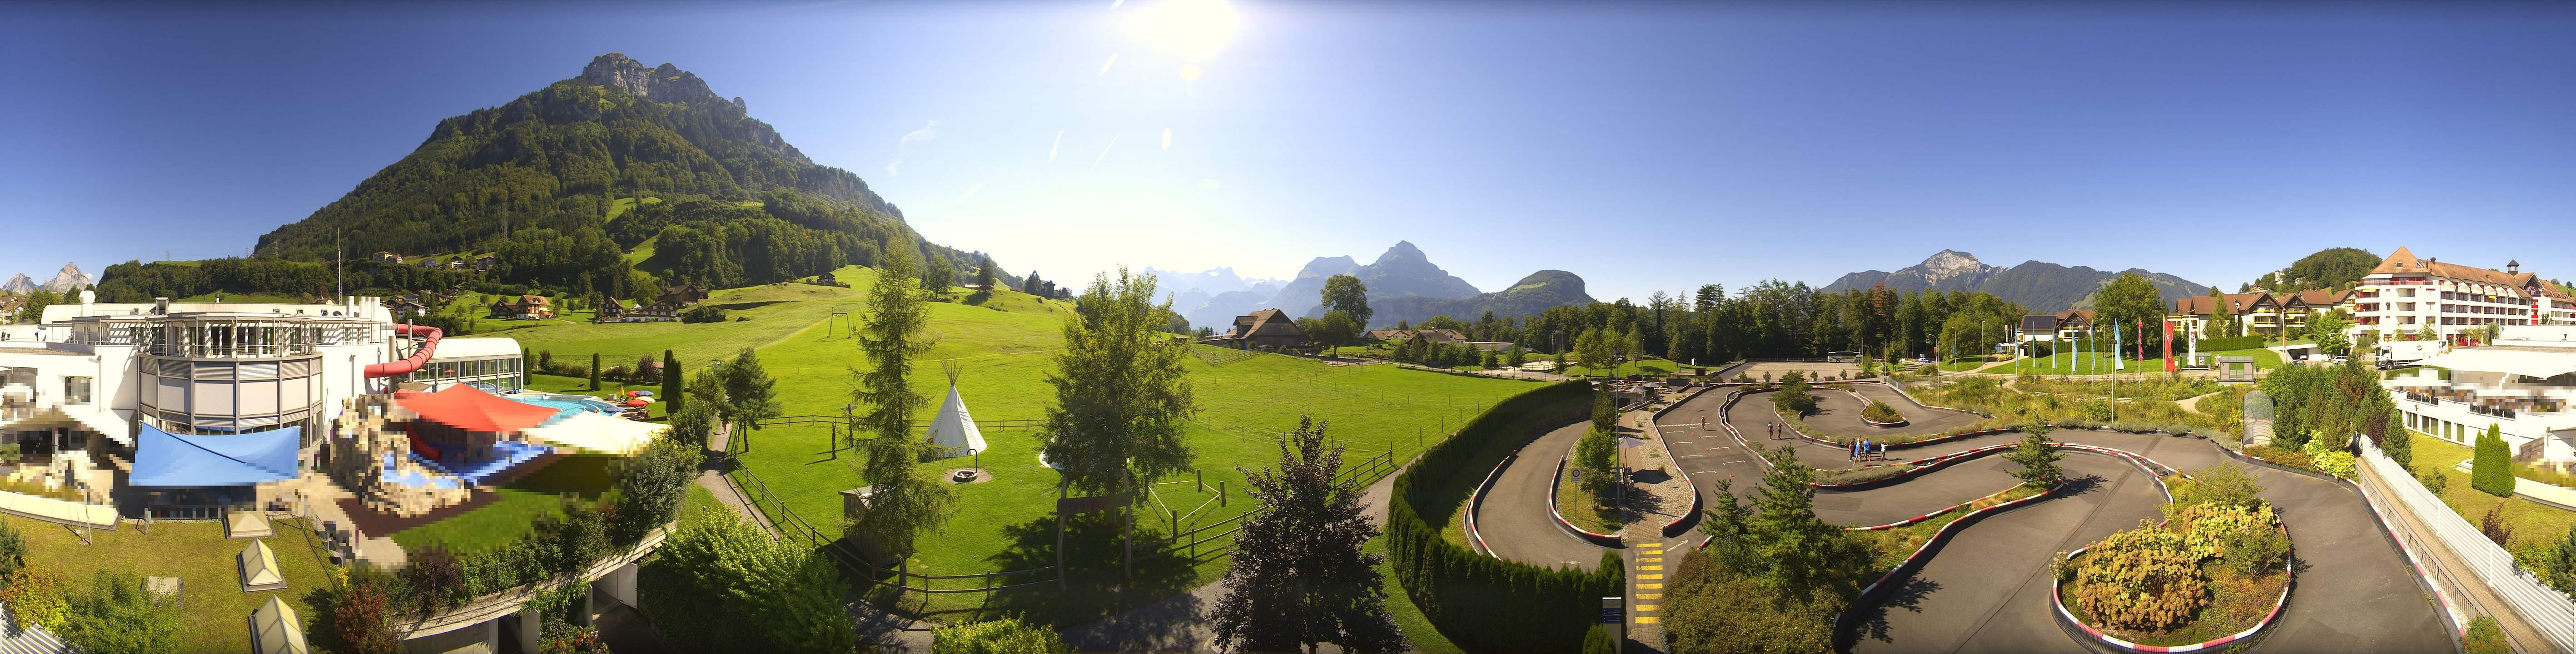 Webcam Morschach Swiss Holiday Park